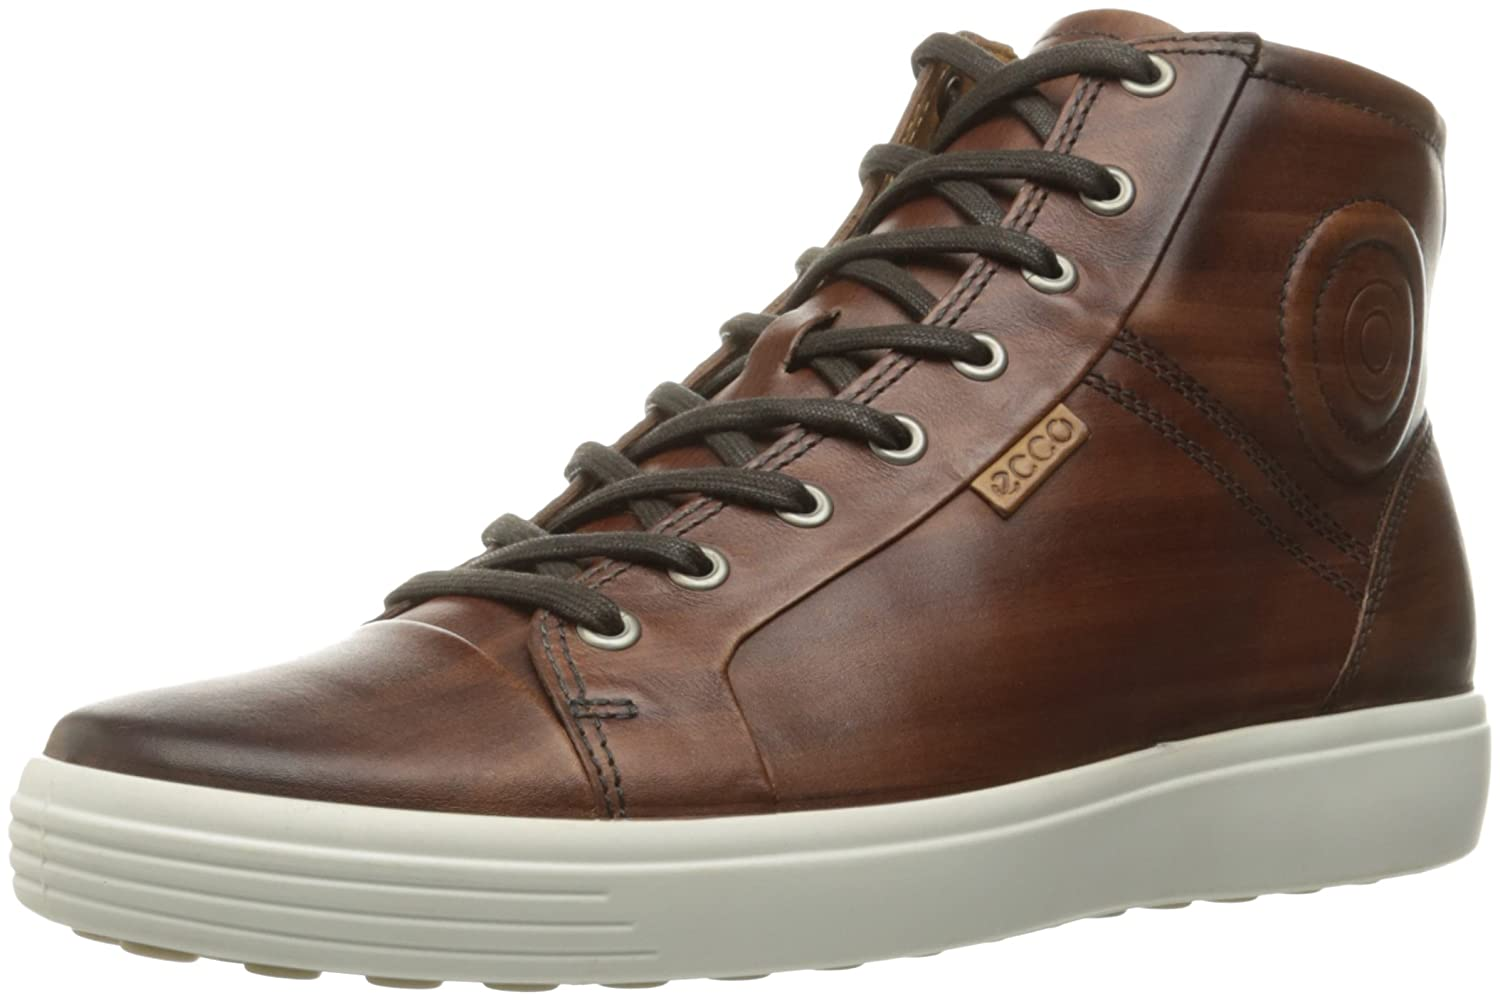 Bspringaaa (1283whisky) ECCO ECCO ECCO Soft 7 Män's Hi -Top skor  inget minimum